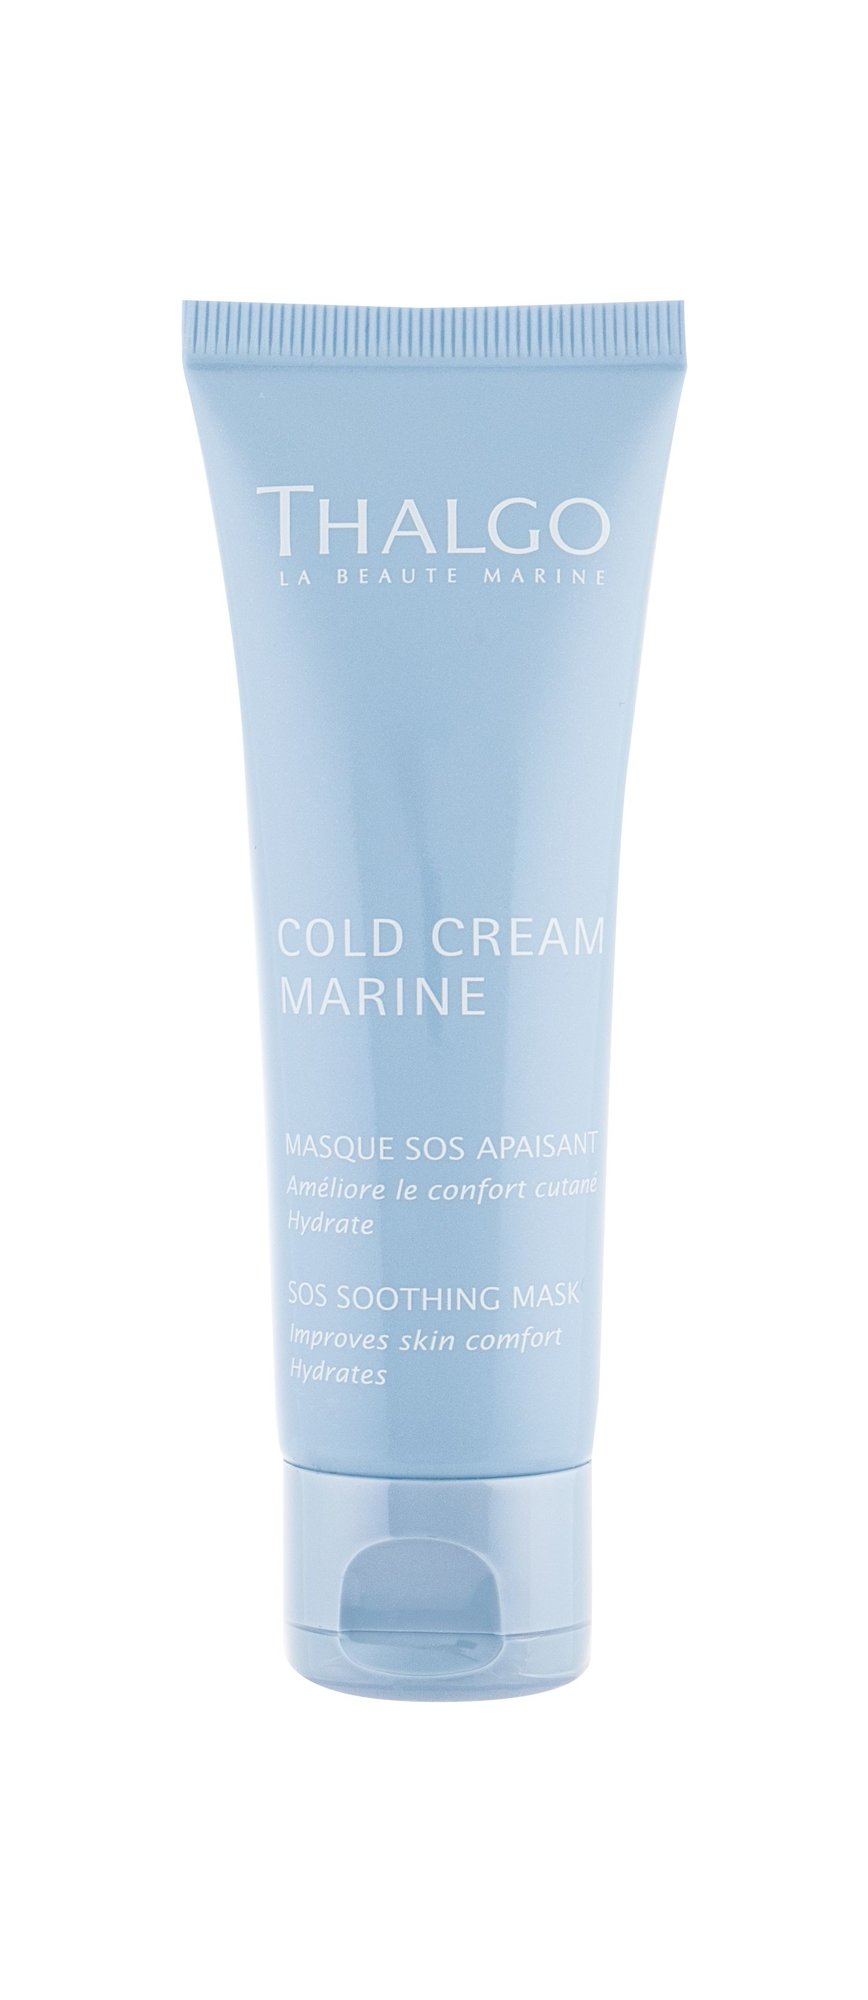 Thalgo Cold Cream Marine Face Mask 50ml  SOS Soothing Mask